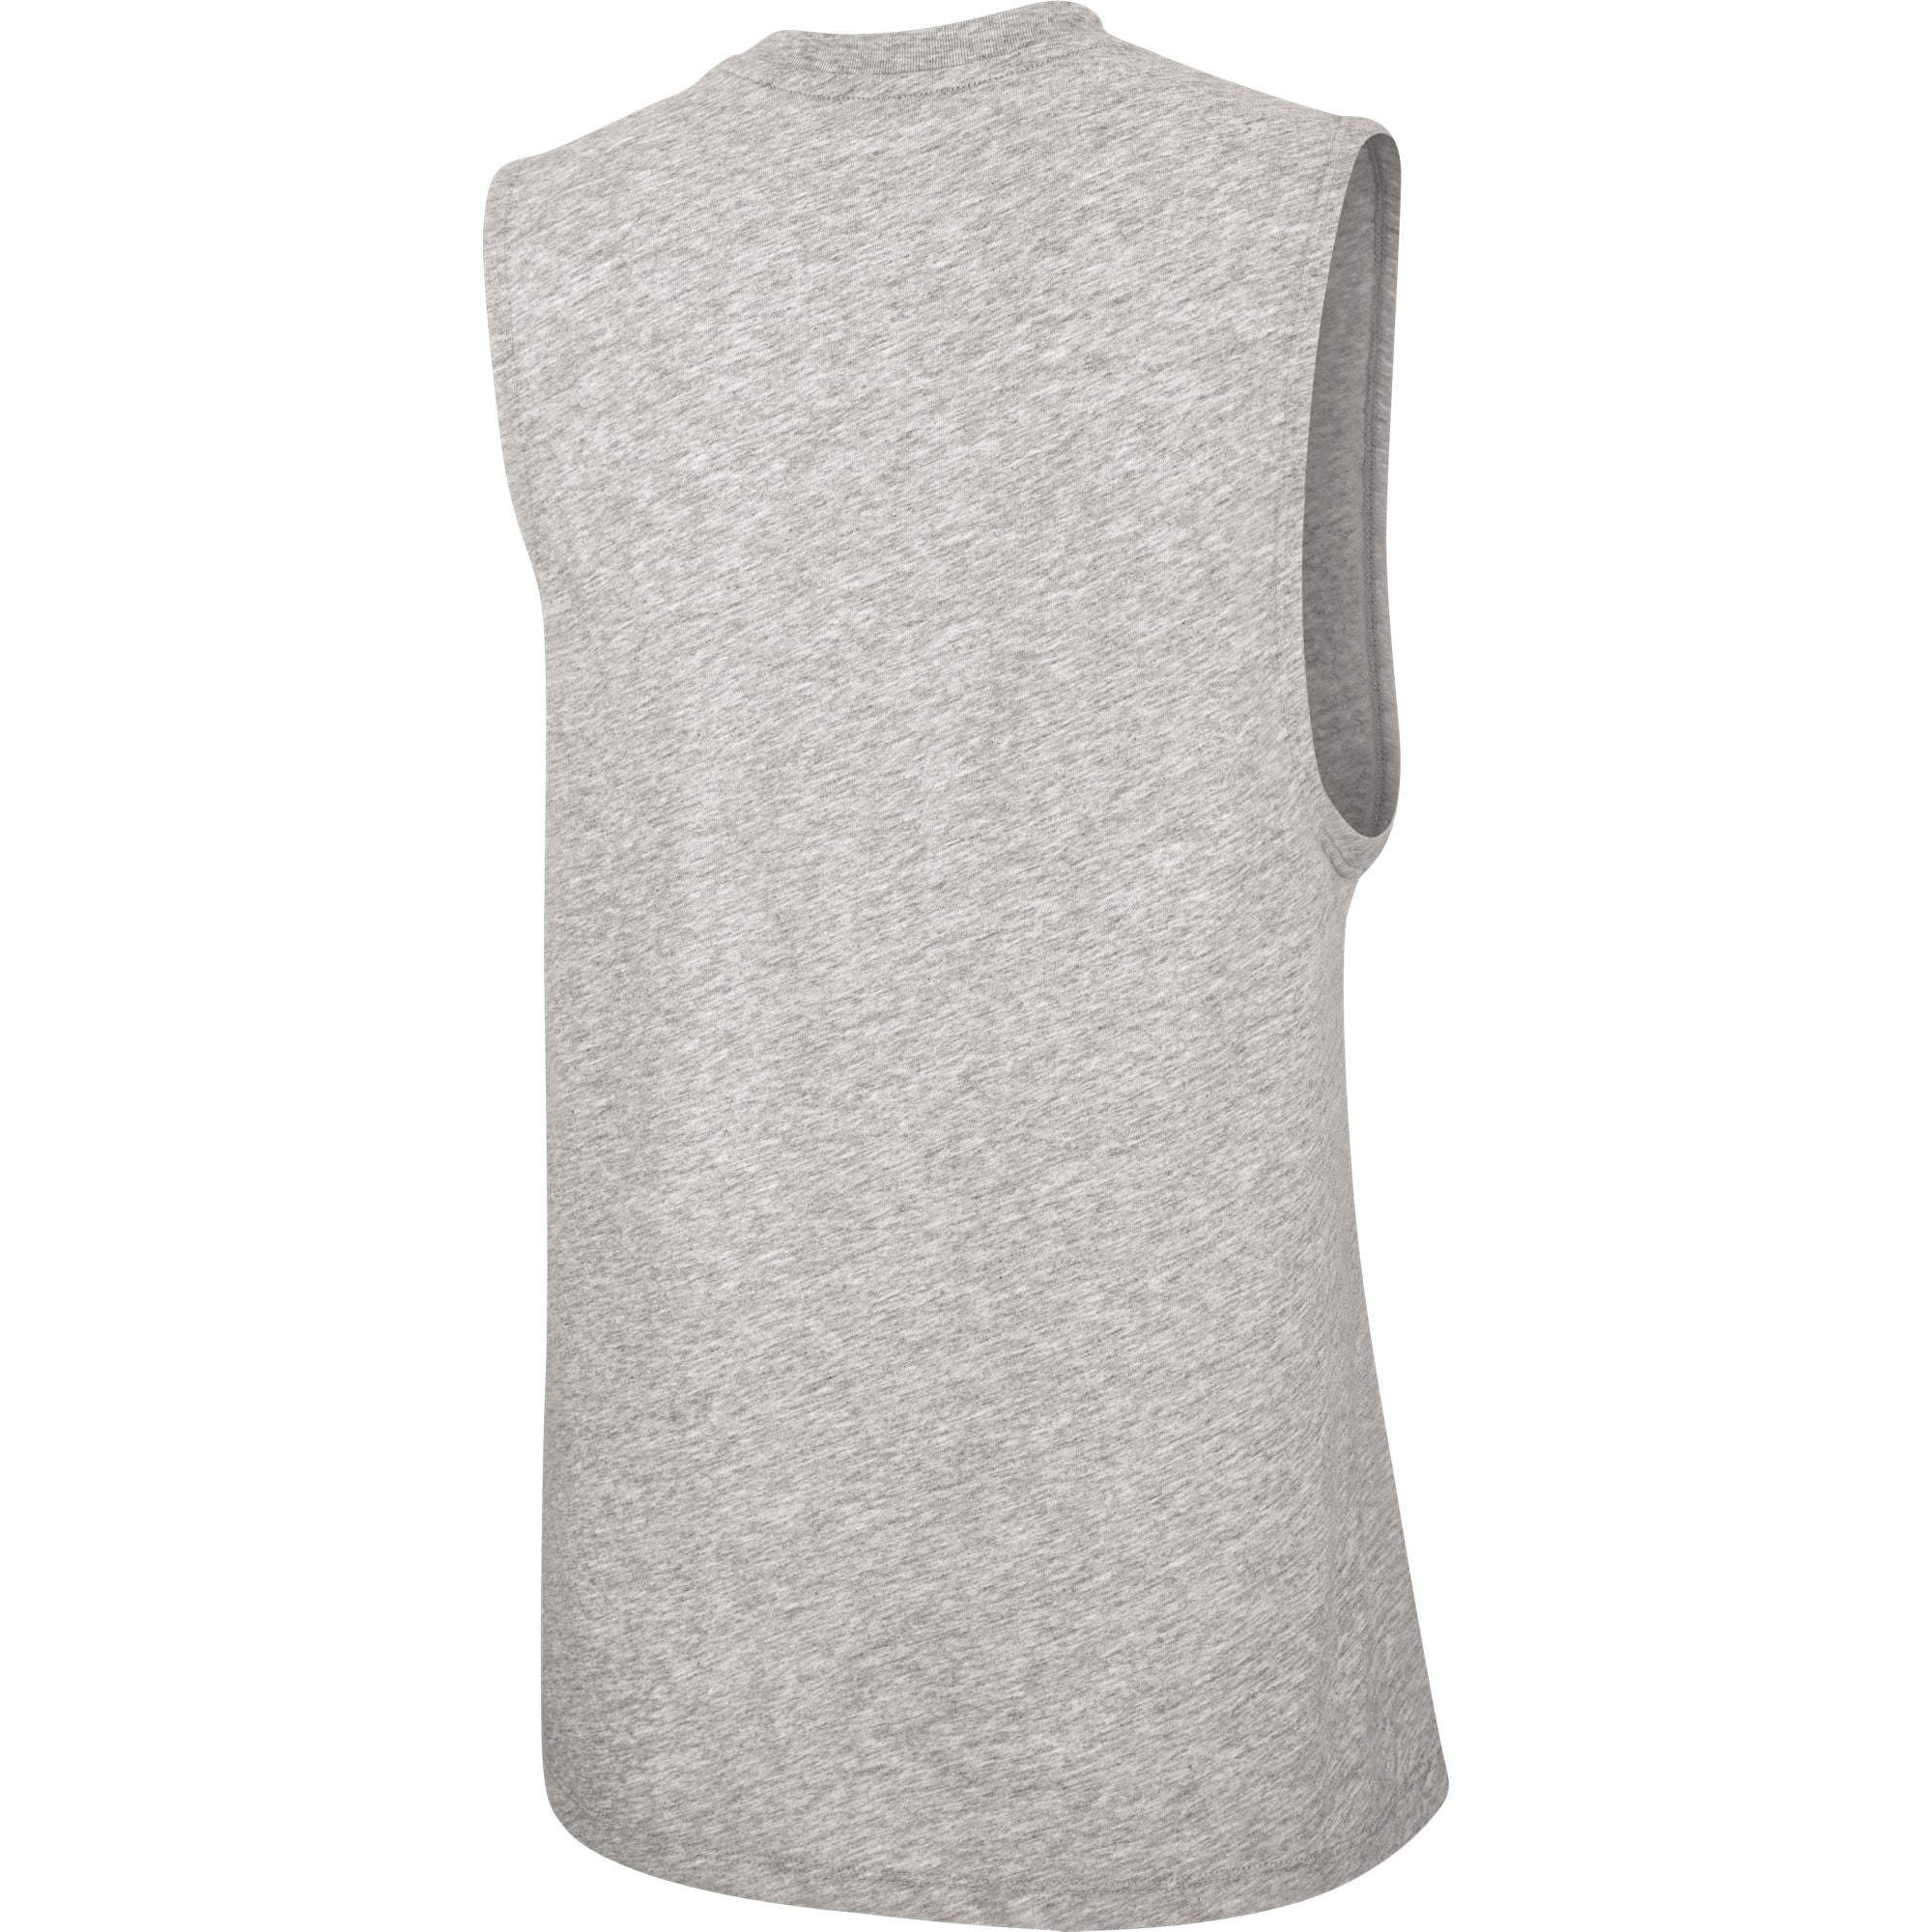 Nike Womens Basketball Dry Cotton Graphic Tank - Dark Grey Heather